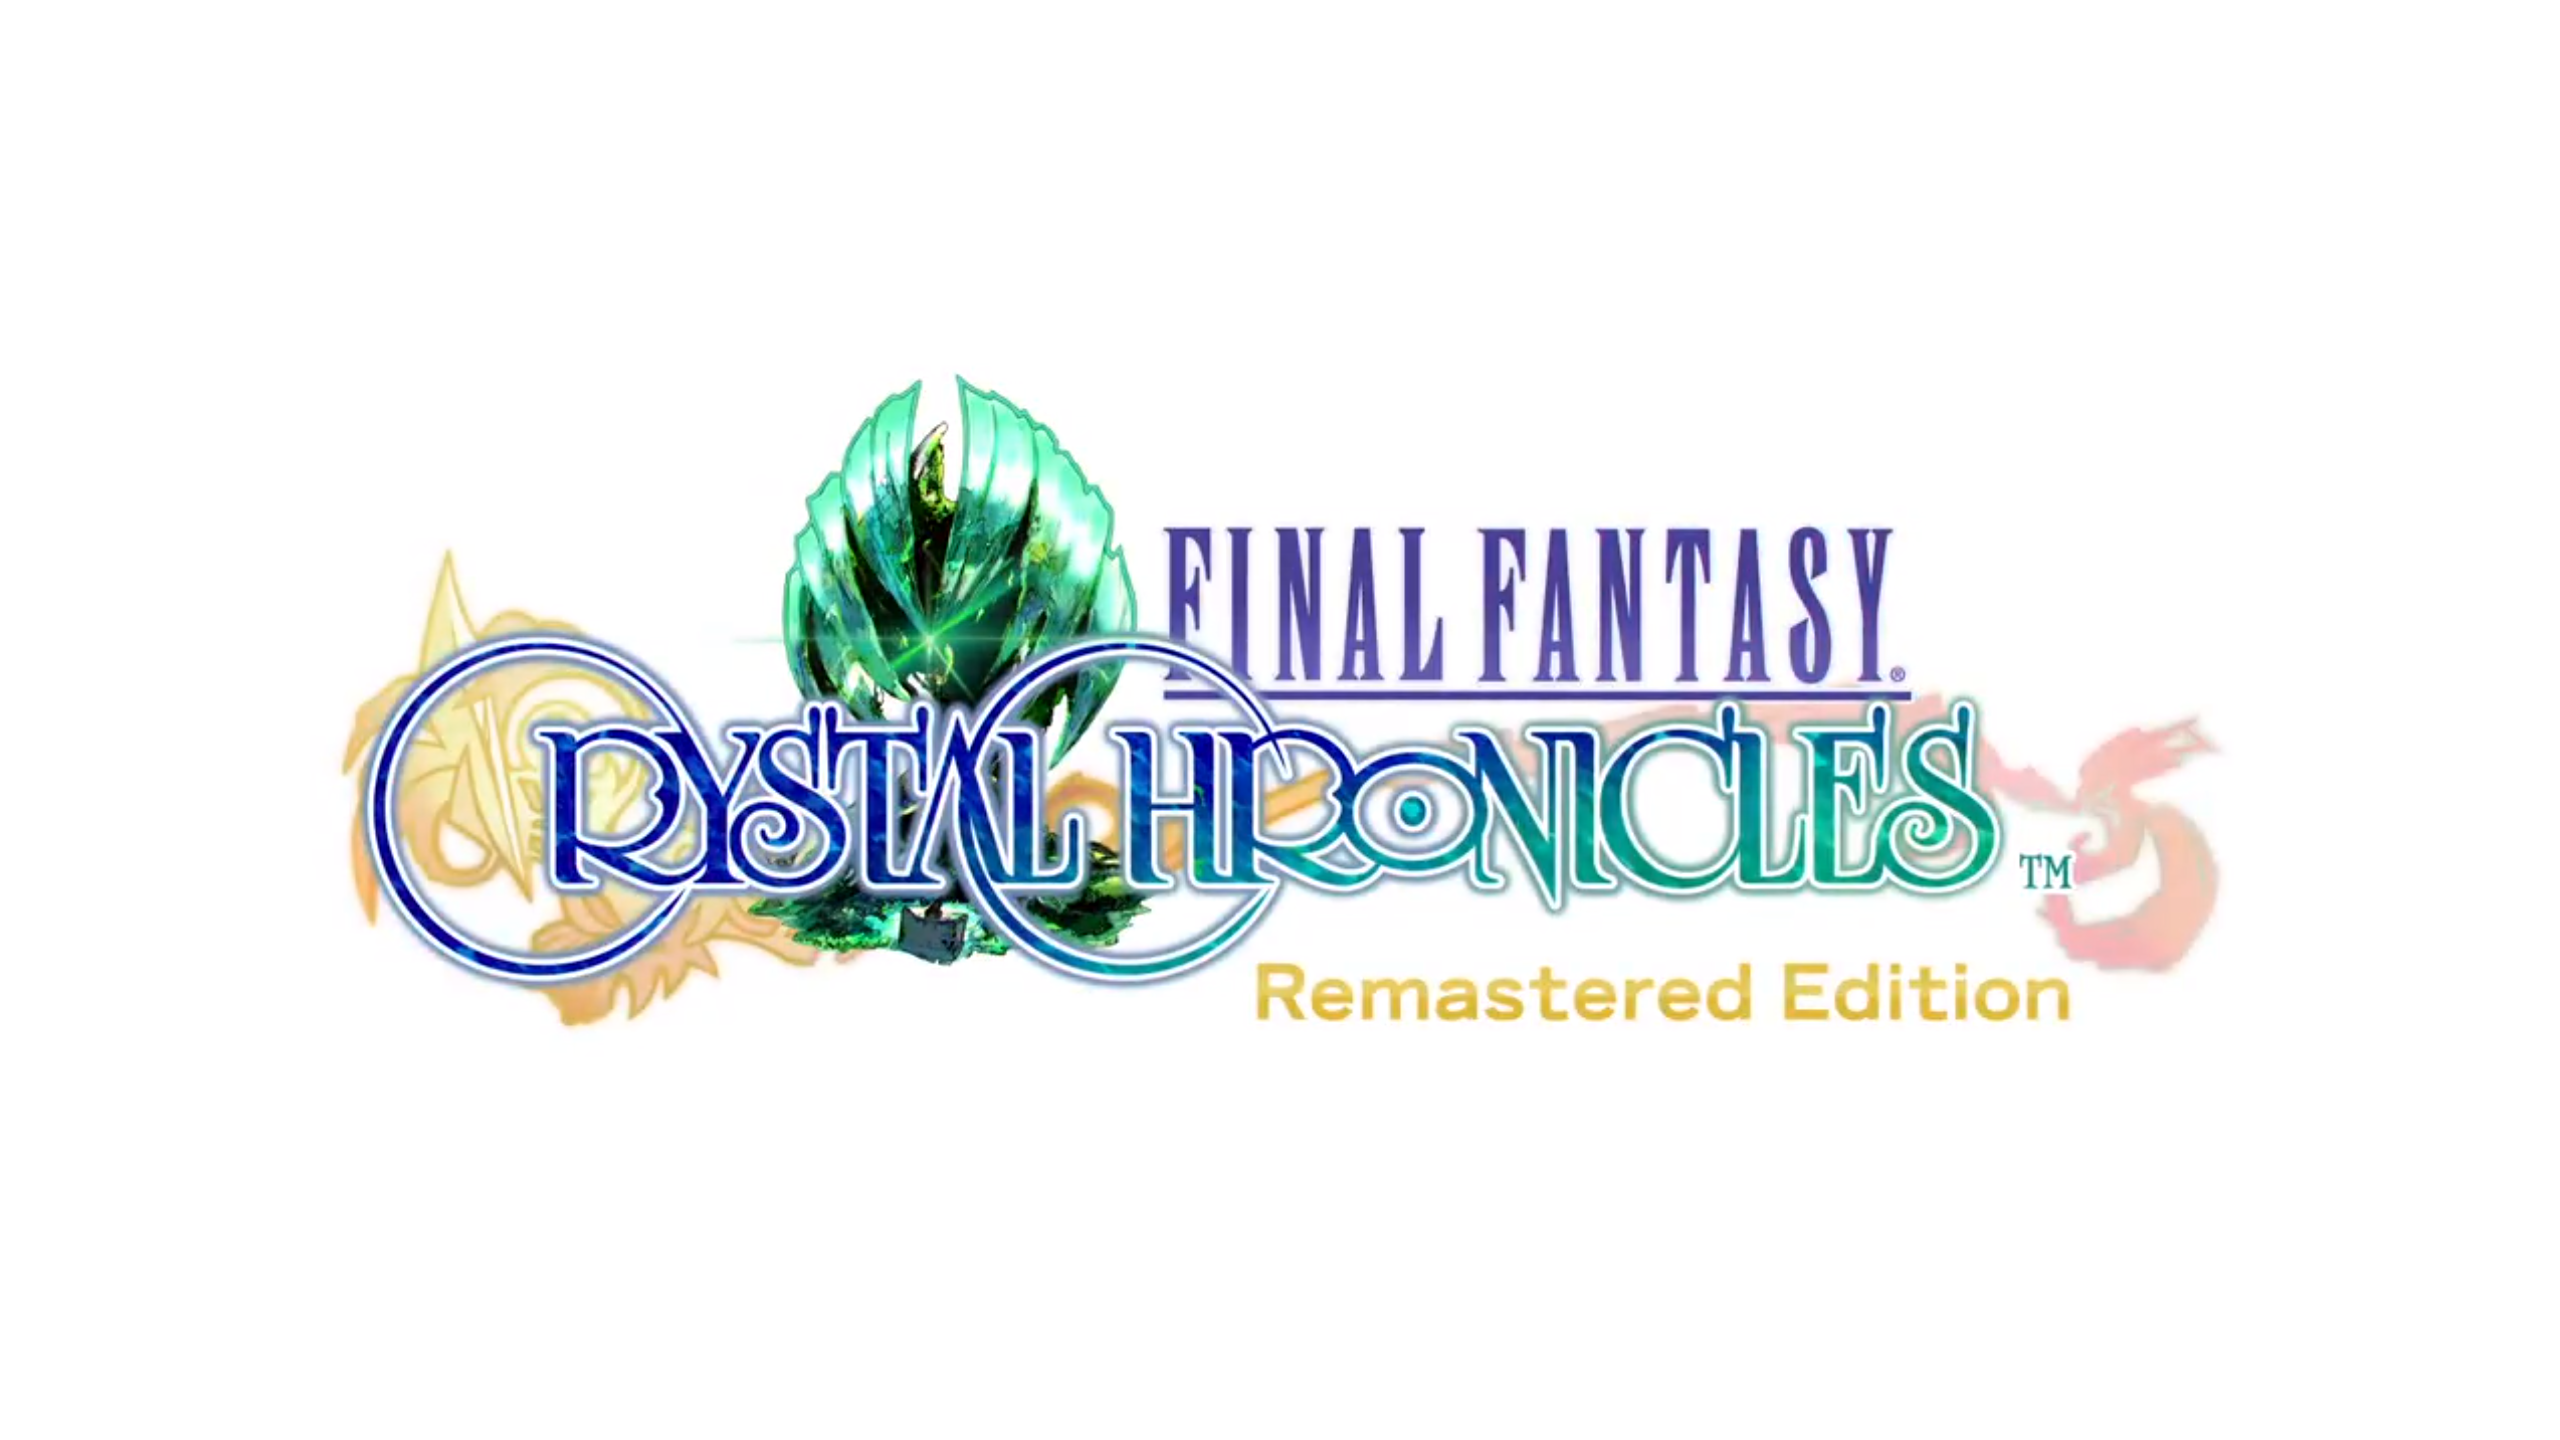 [Update: Official release Jan. 23, 2020] Final Fantasy Crystal Chronicles Remastered Edition coming to Android this winter